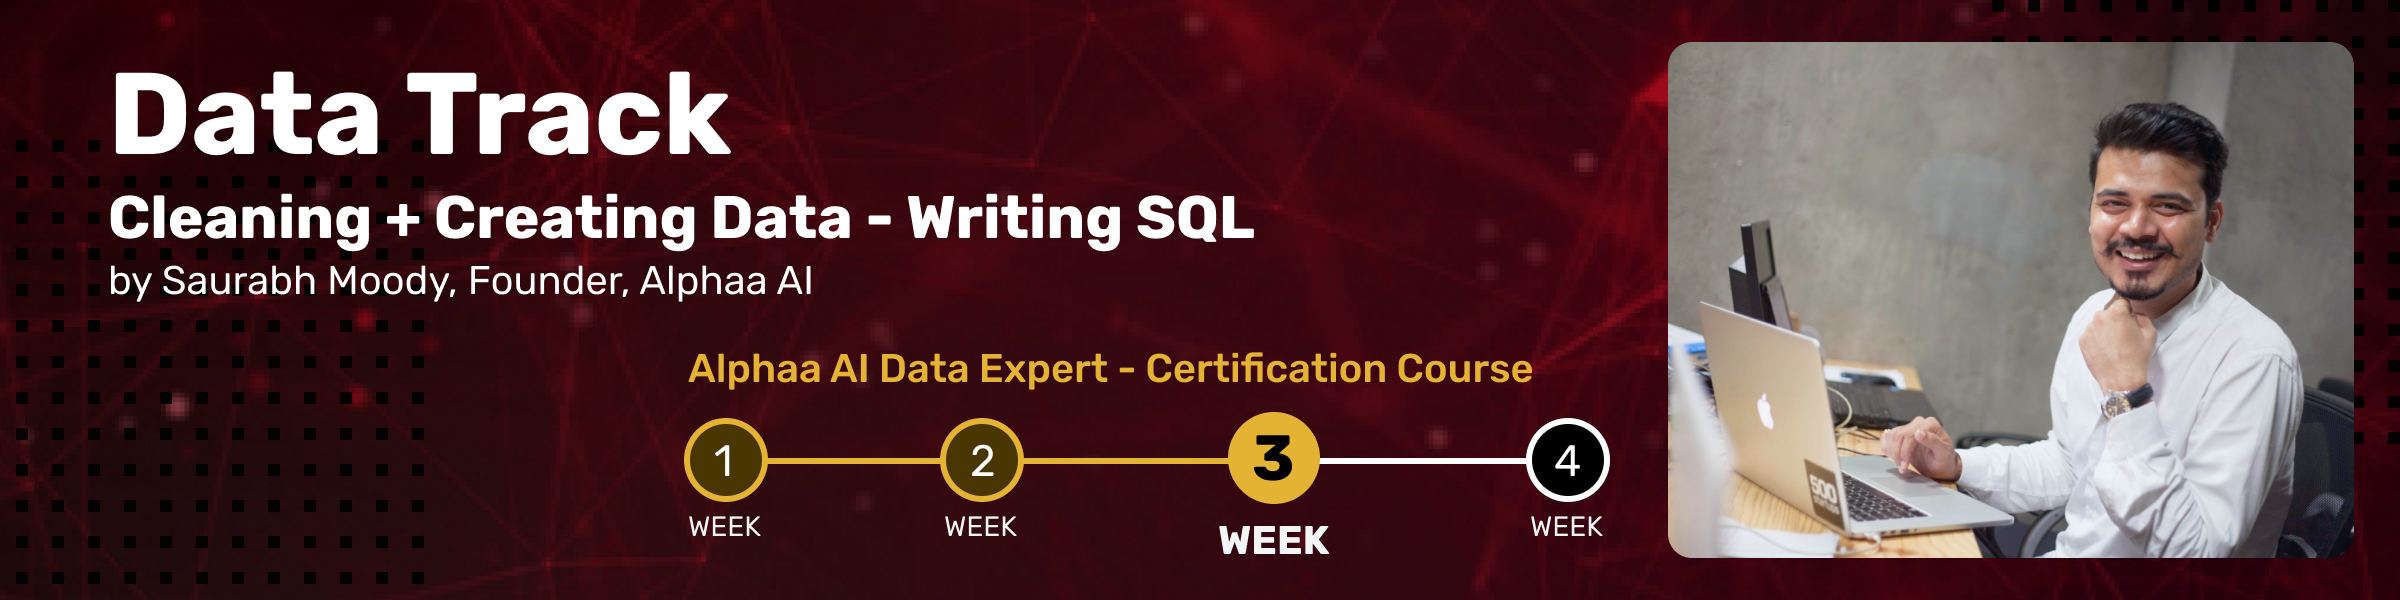 Cleaning + Creating Data - Writing SQL : This is the third Session of Alphaa AI Data Expert Certification Course: Data Track 3.In this week, we will focus on a very important part of any Data Strategy. We will focus on cleaning and & creating data and identifying the right toolset and approach for this.You can join us on Linkedin Live to attend the session. It will be an interactive 1 hour-long session with 20 mins of QnA.